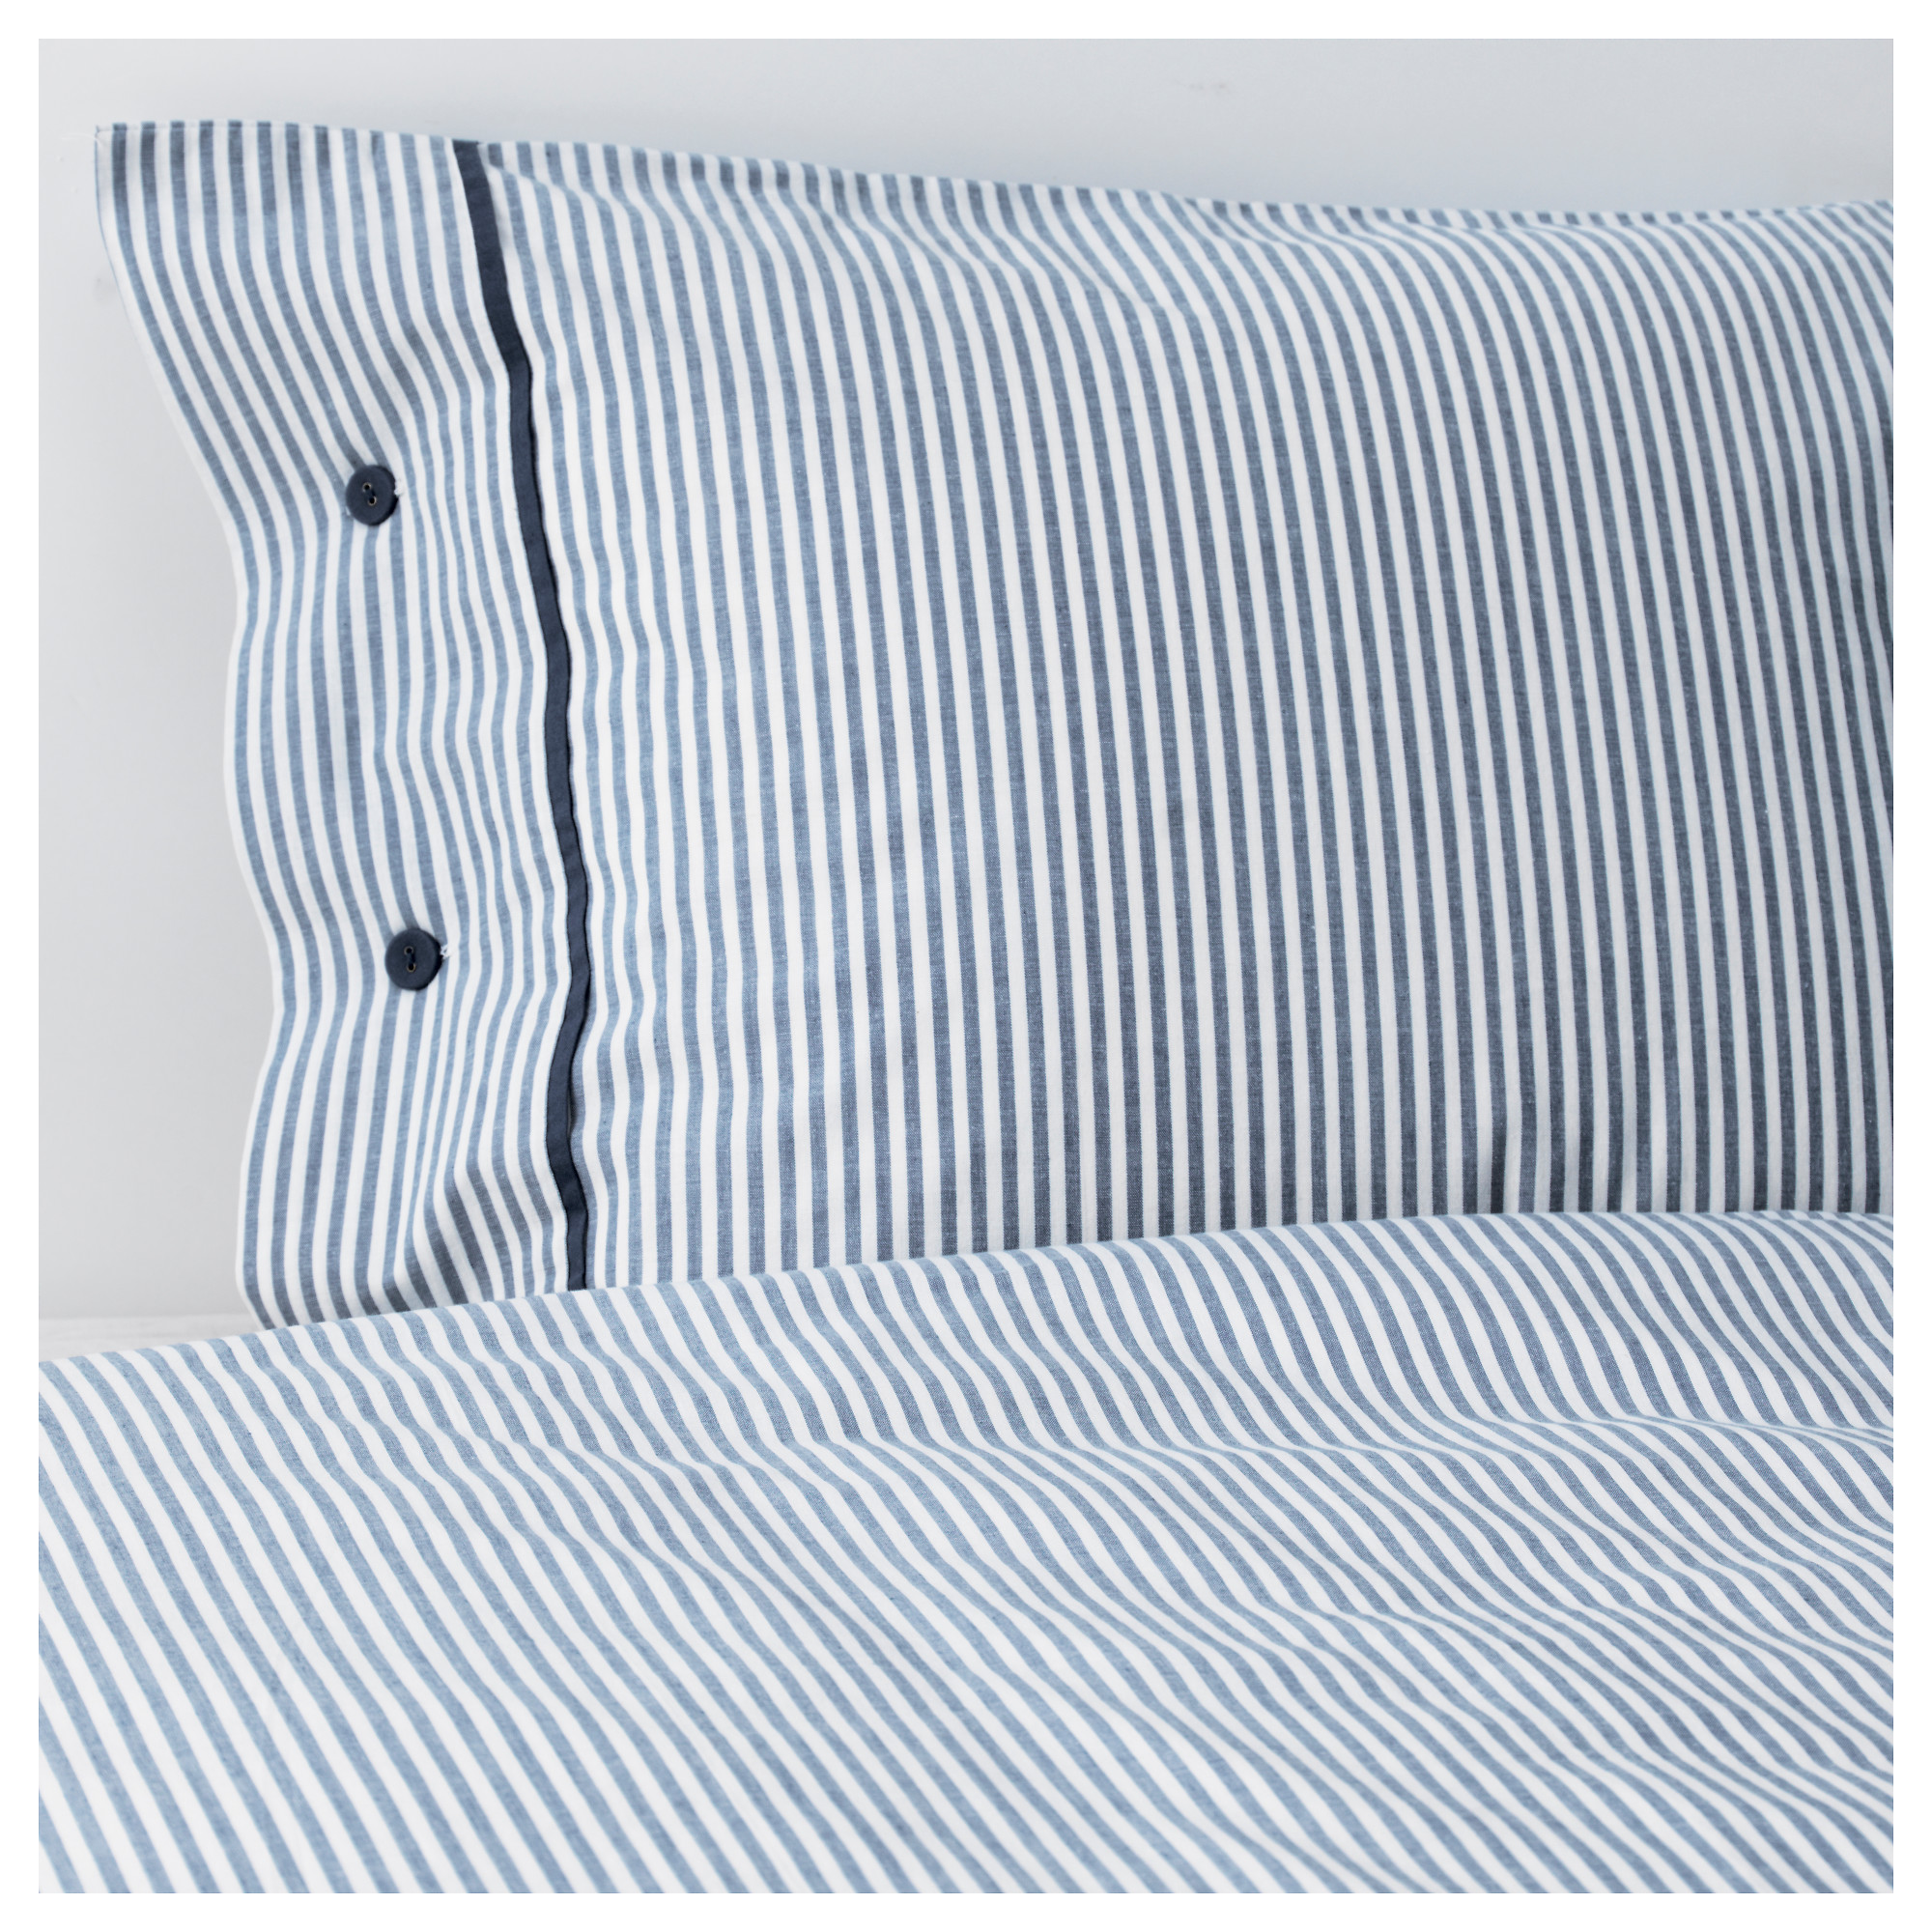 NYPONROS duvet cover and pillowcase s   white blue Thread count  152. Bedding   Bed Linen   IKEA